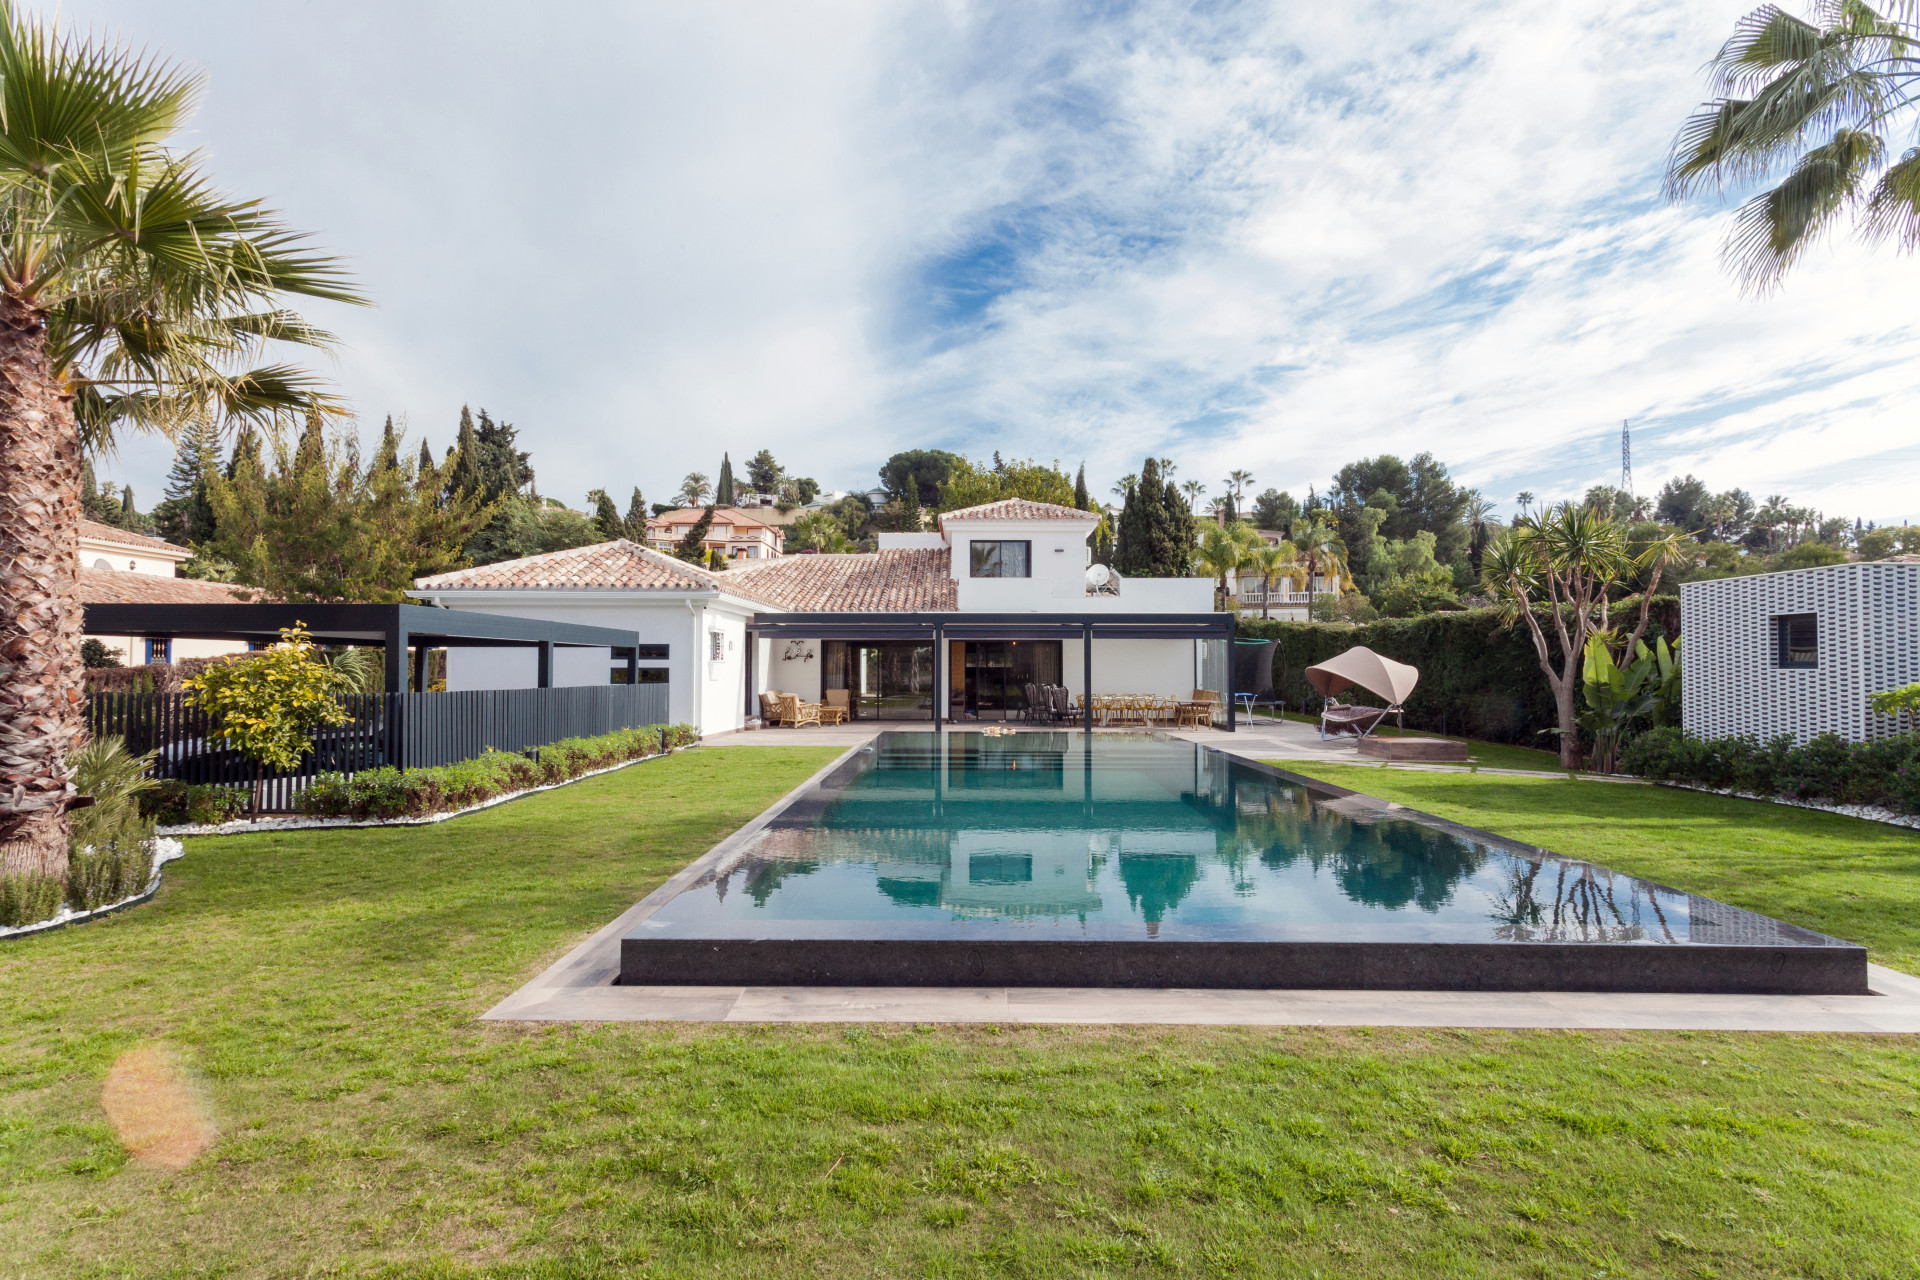 A paradise villa in the heart of the Costa del Sol in Estepona